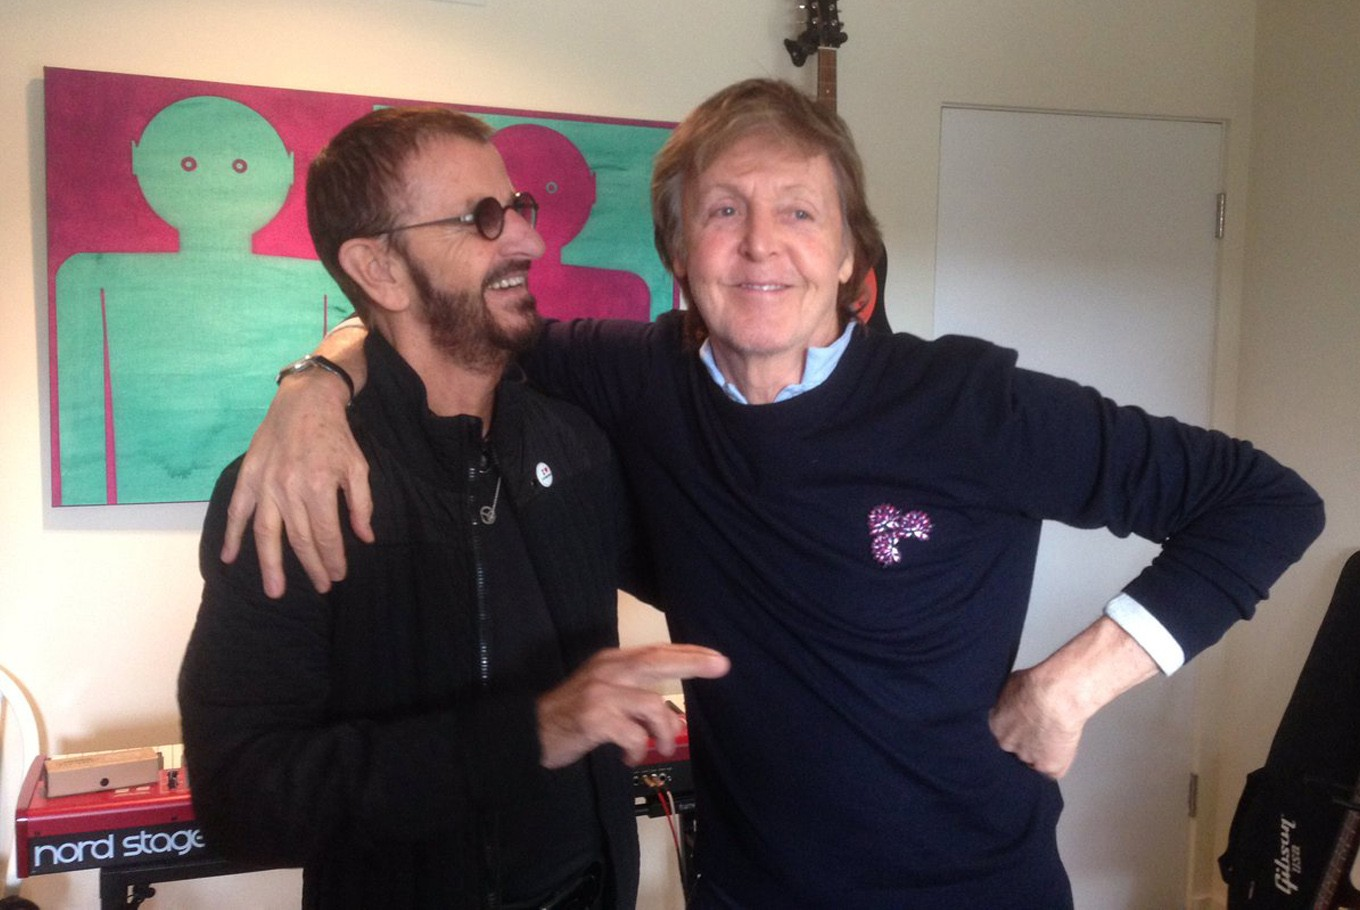 Singer Paul McCartney Reunites With Fellow Beatle Ringo Starr In The Studio